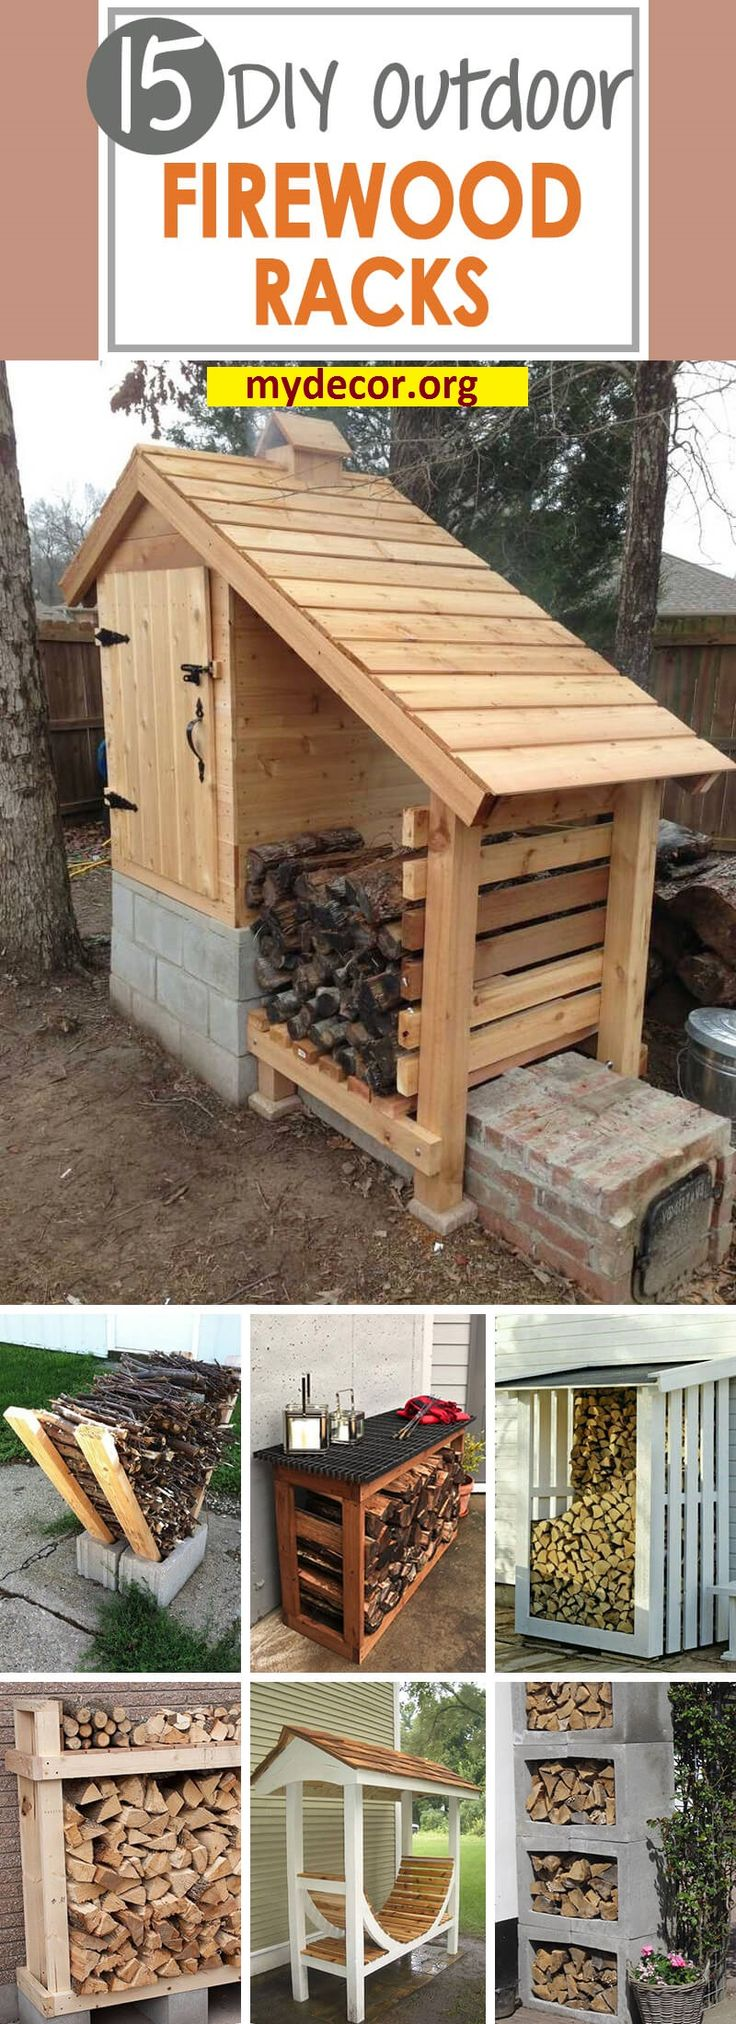 In my home, we use a lot of firewood. During the cold winter months, we have a wood stove that we burn to keep our home nice and cozy. We also have a fireplace in our basement that we burn during the holidays when we have guests over. Both of these devices take a lot of wood to operate all...